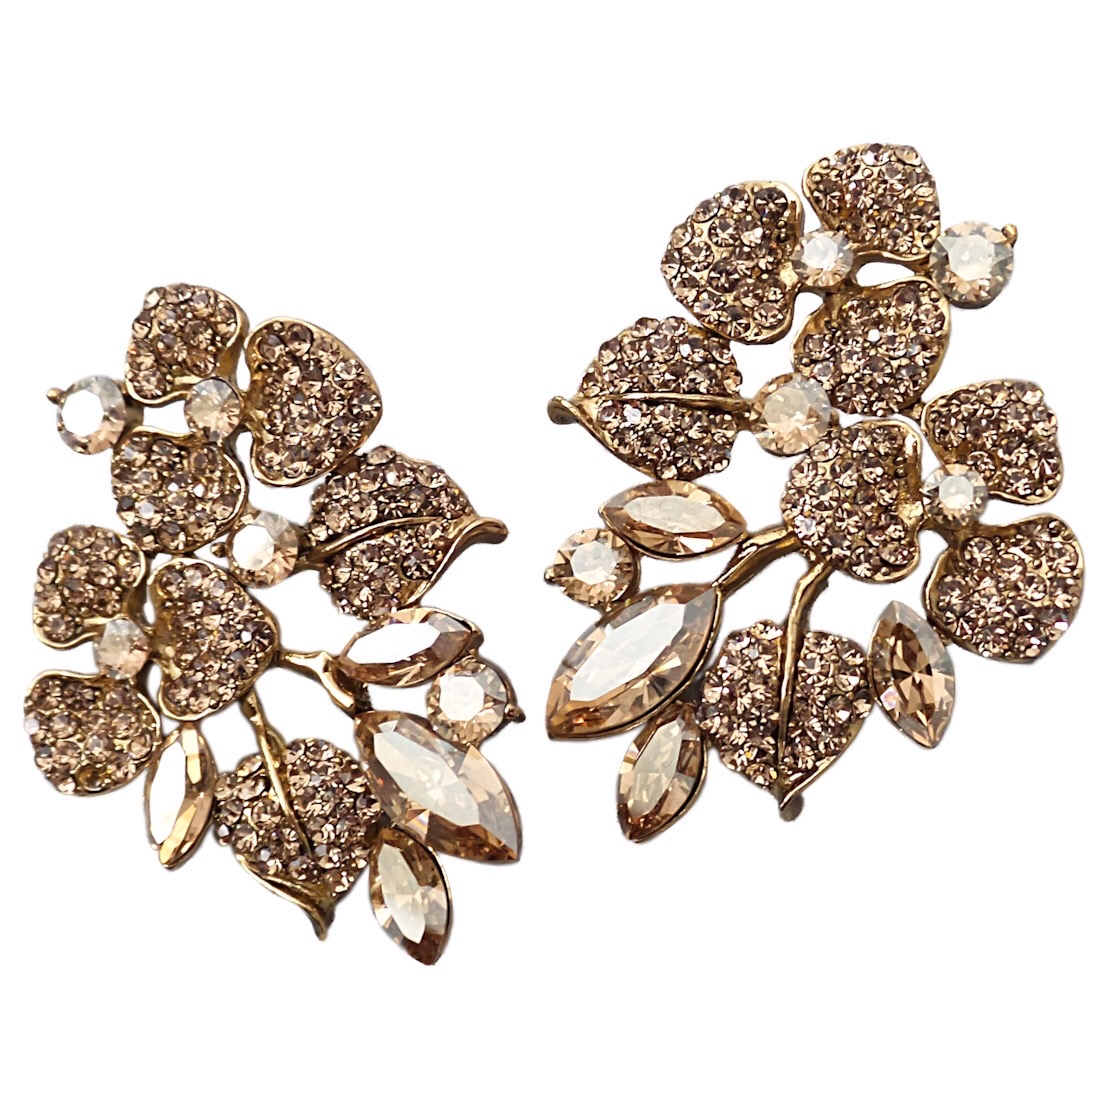 Earrings - DESERT ROSE2/CGSG